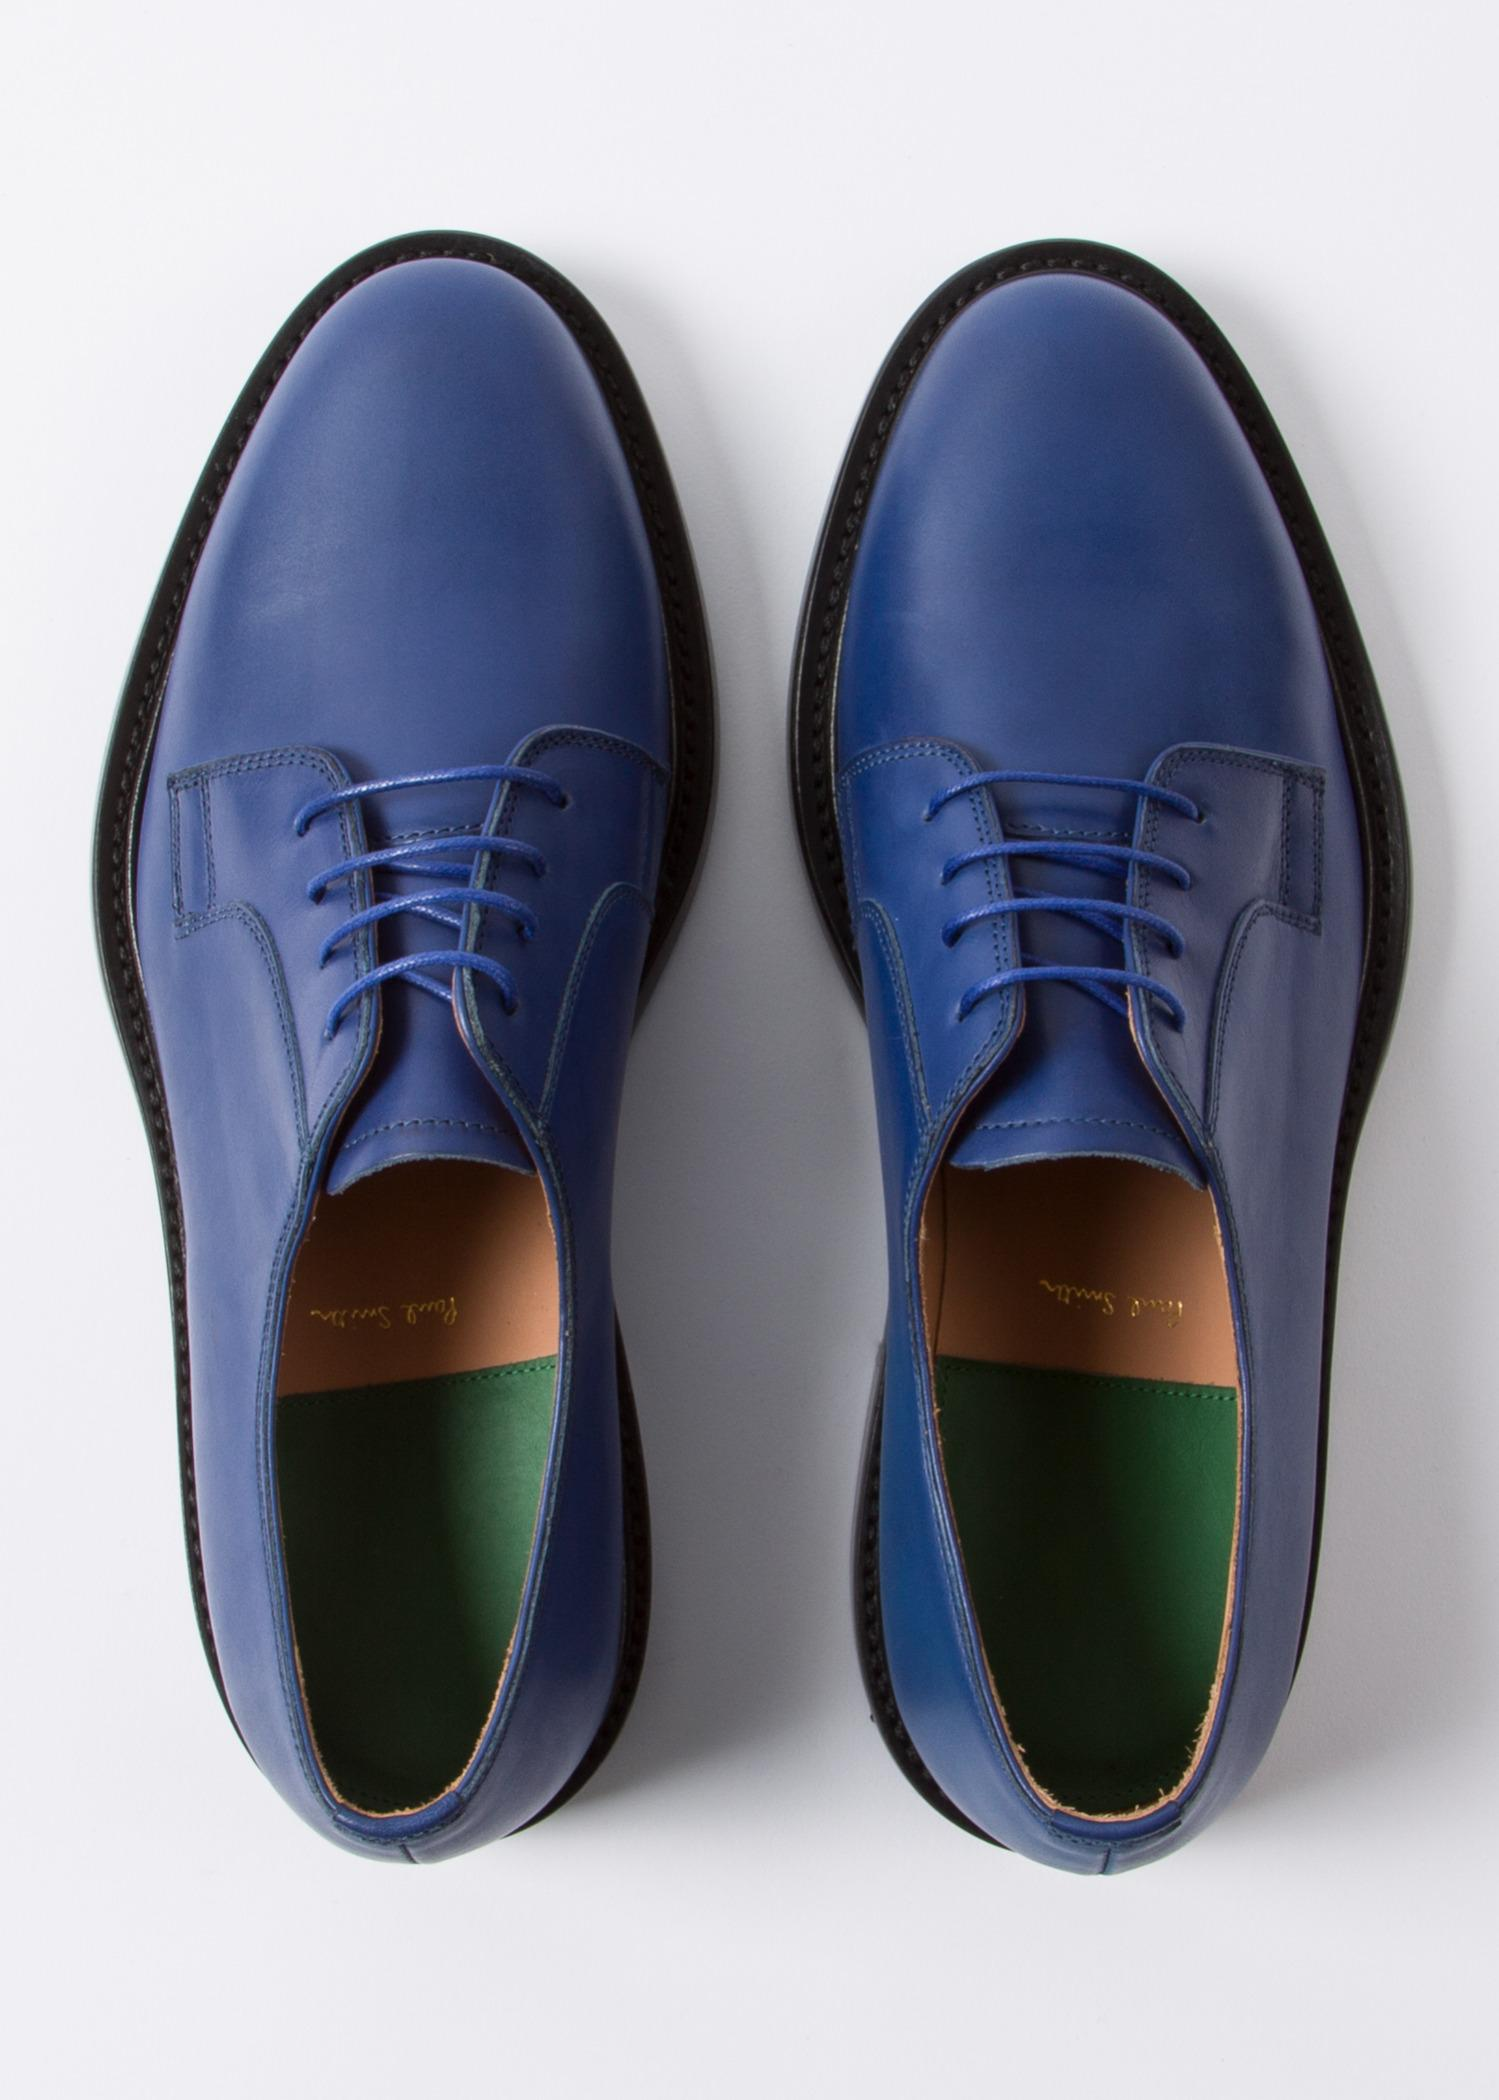 Paul Smith Blue Leather 'Boyd' Shoes for Men